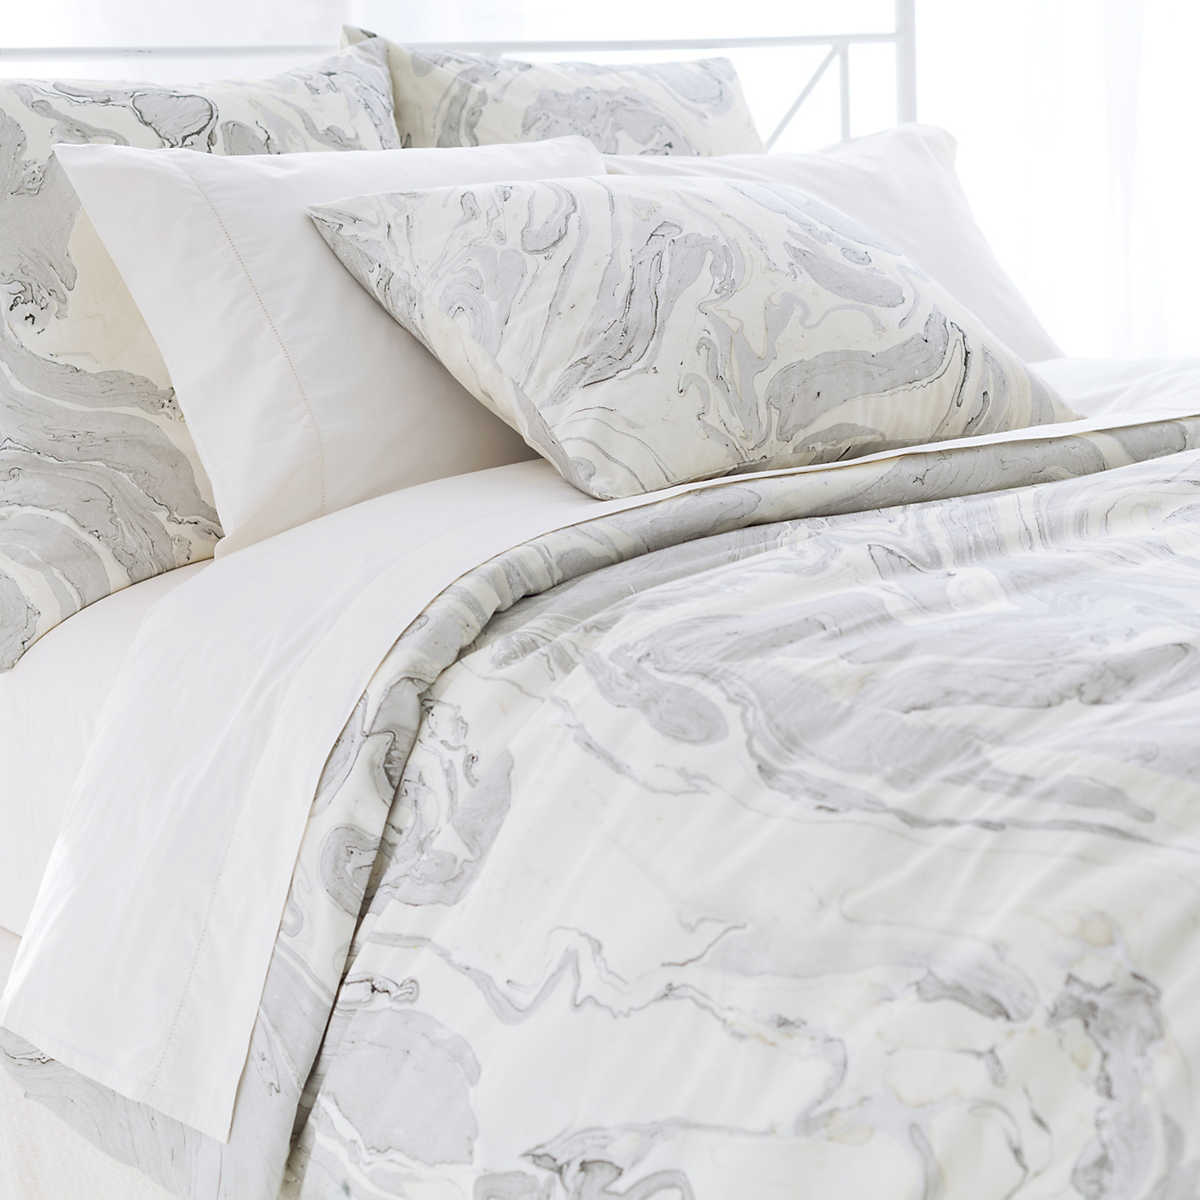 Marble Natural Duvet Cover | The Outlet : mr tumble quilt cover - Adamdwight.com